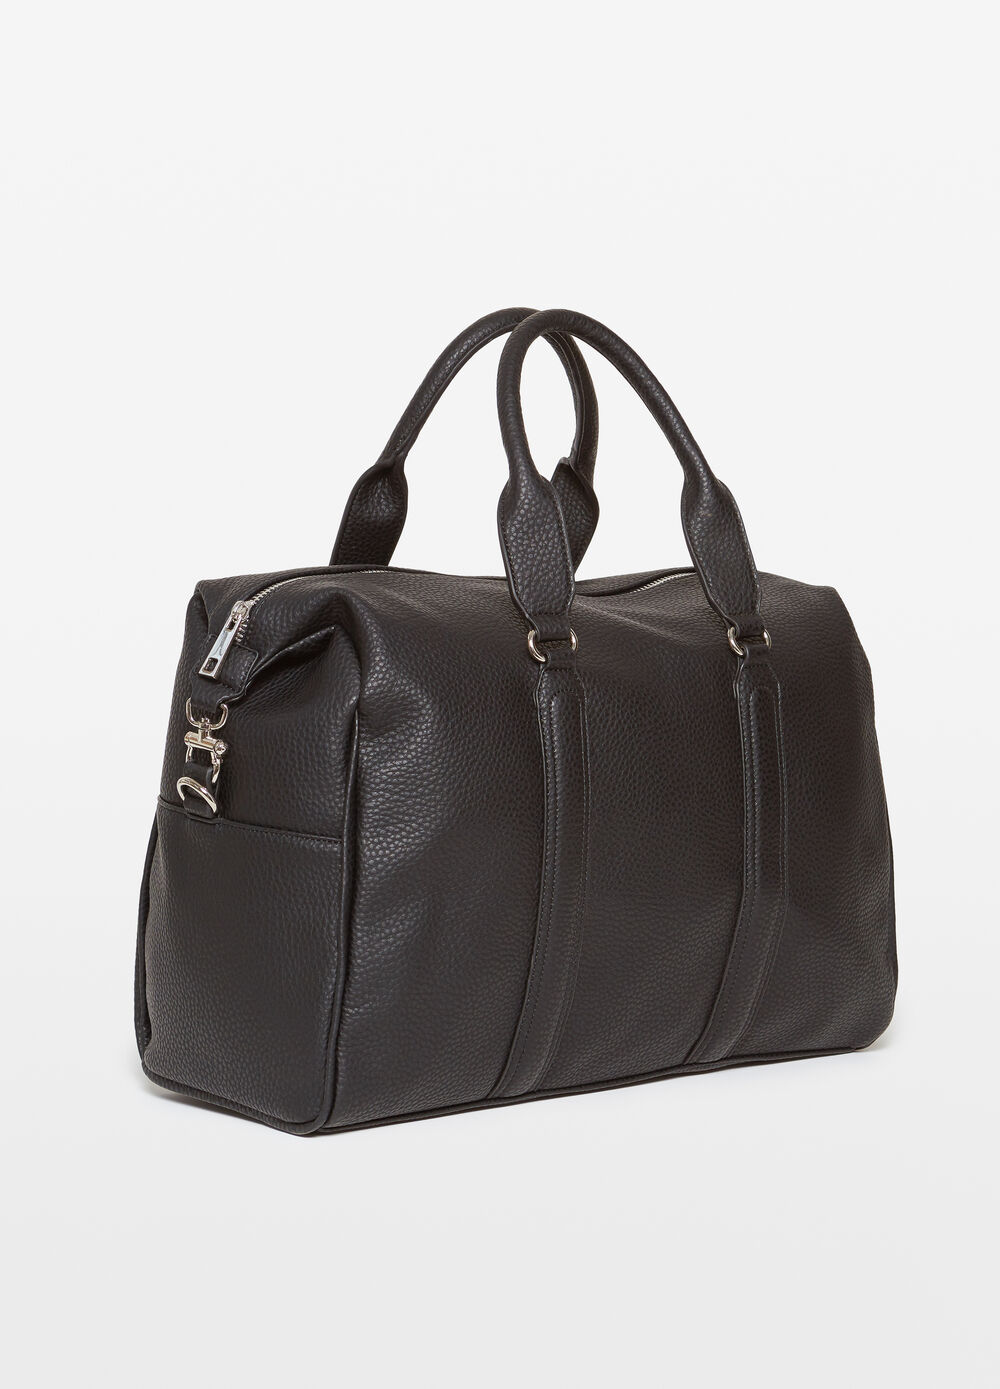 Rumford bag with hammered effect